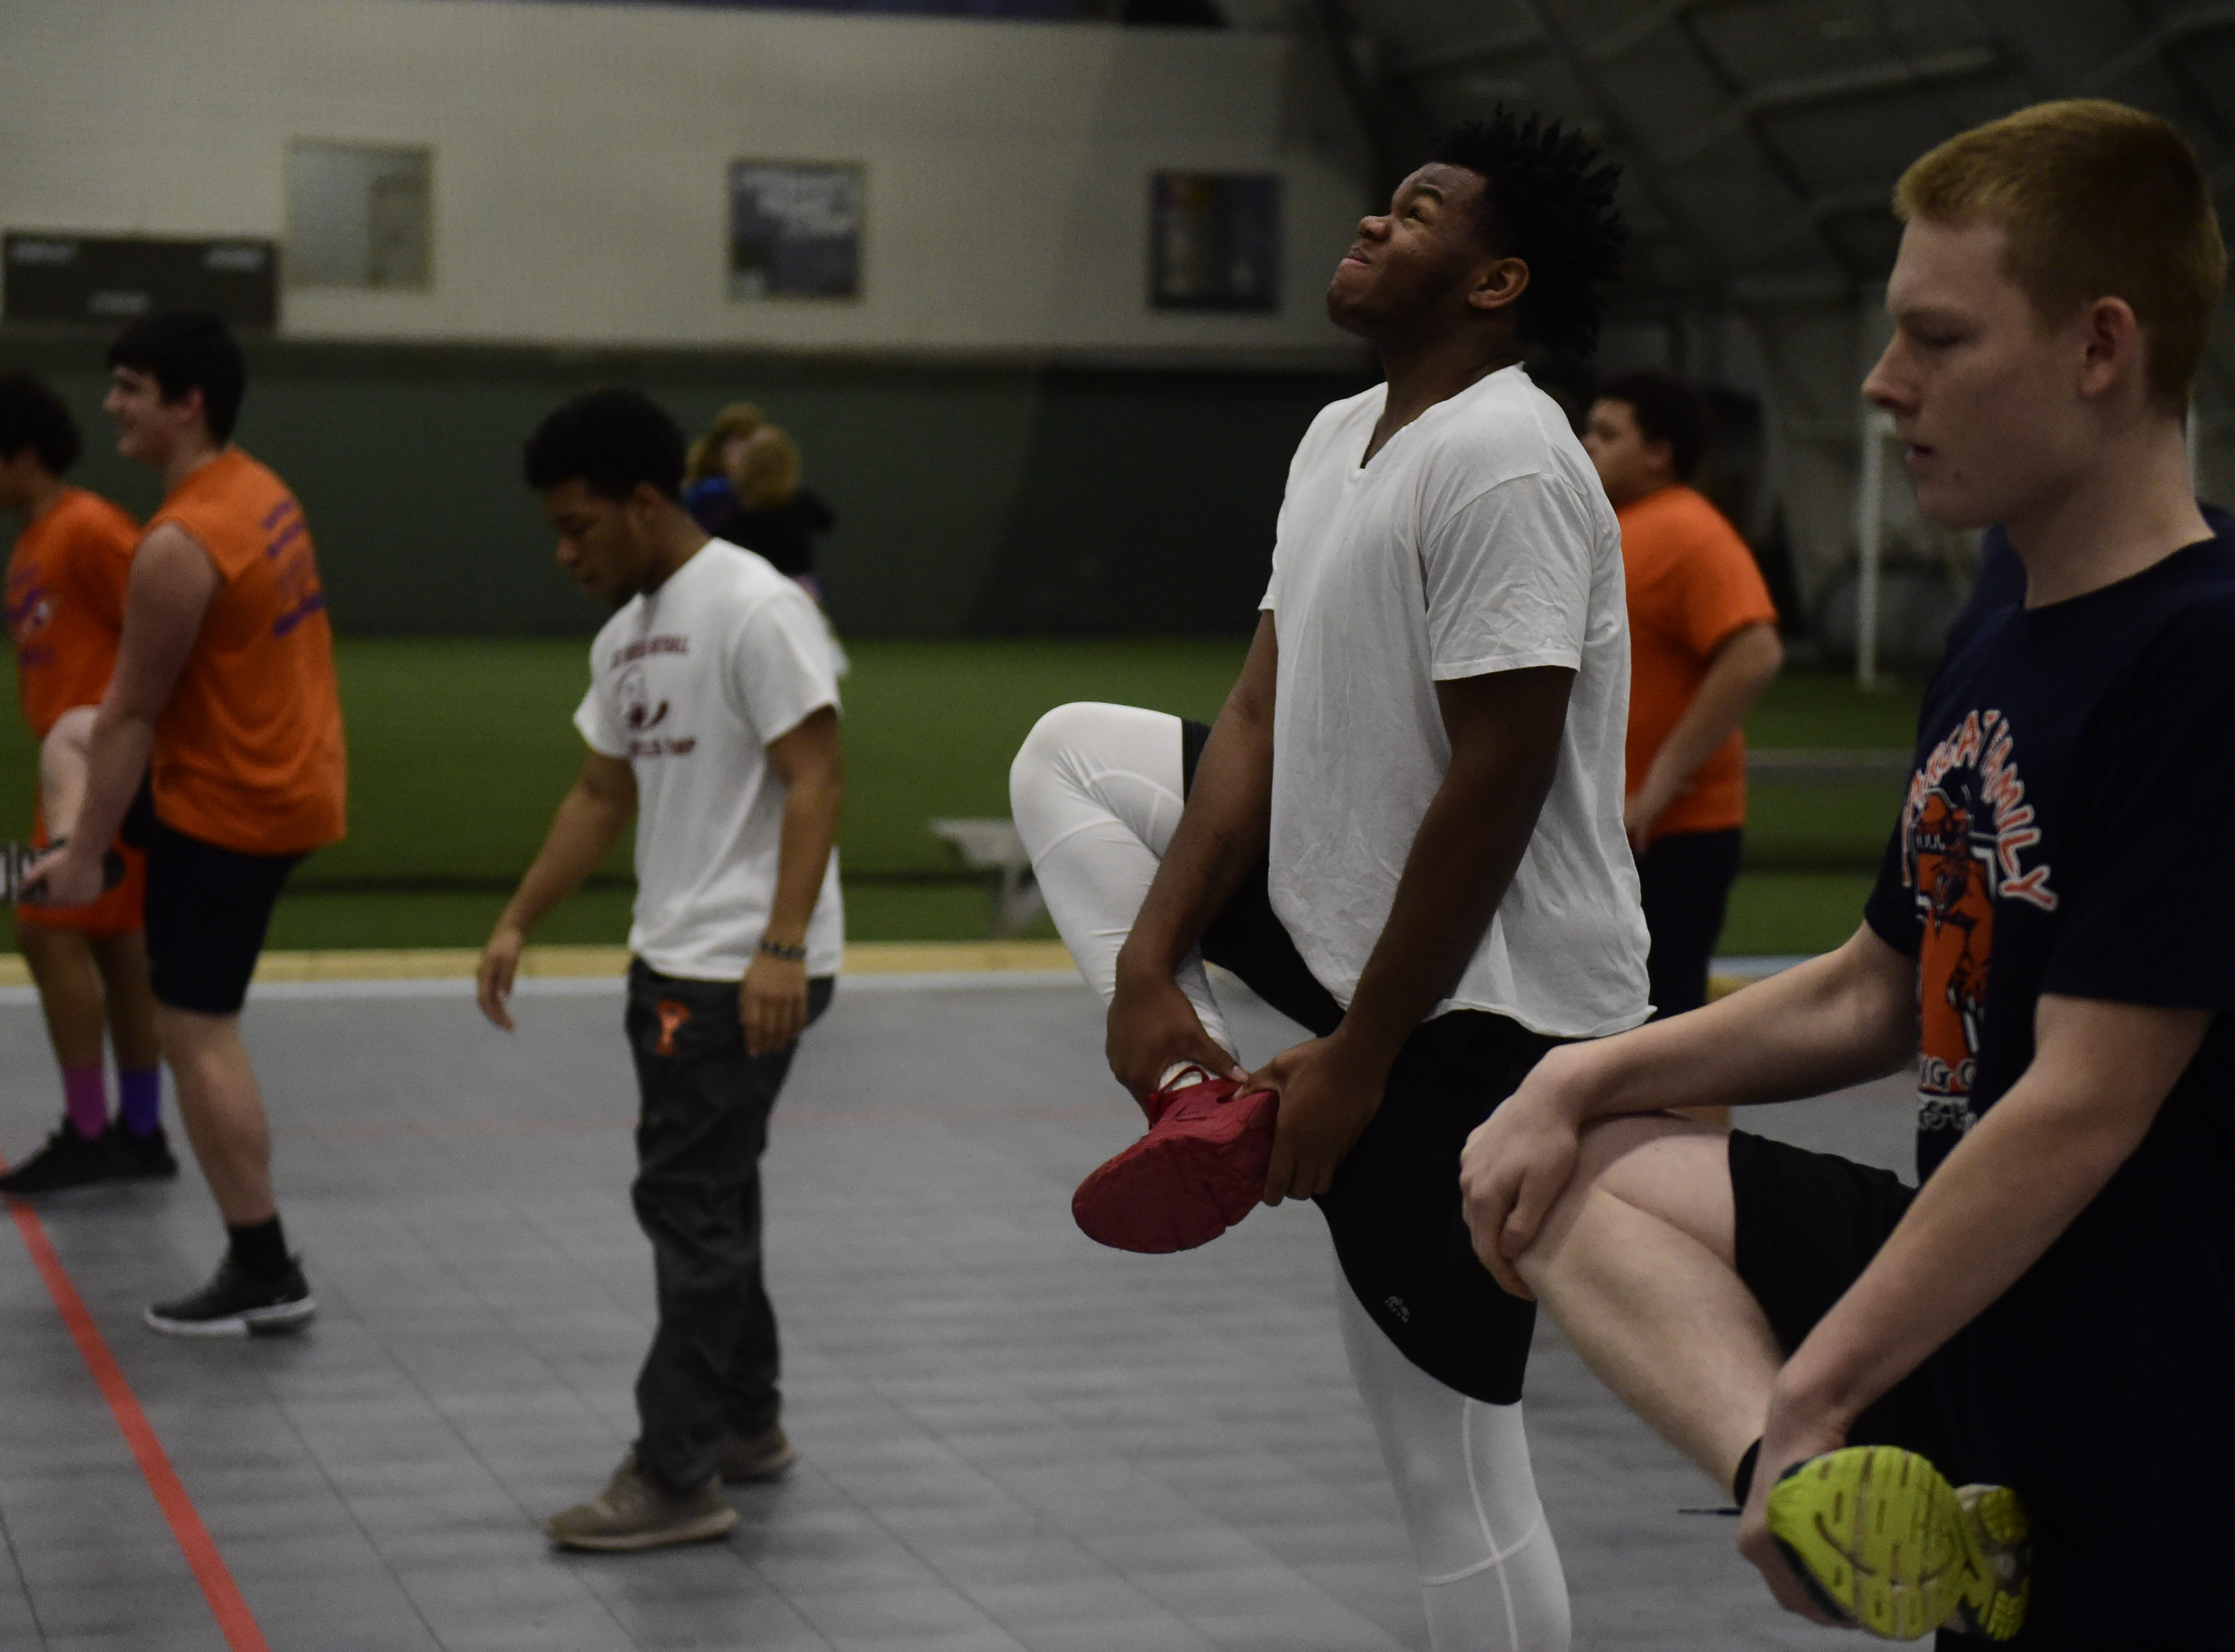 York High football players stretch during offseason workouts Thursday, Dec. 13, 2018 at Ballyhoo Sports Academy at Heritage Hills.